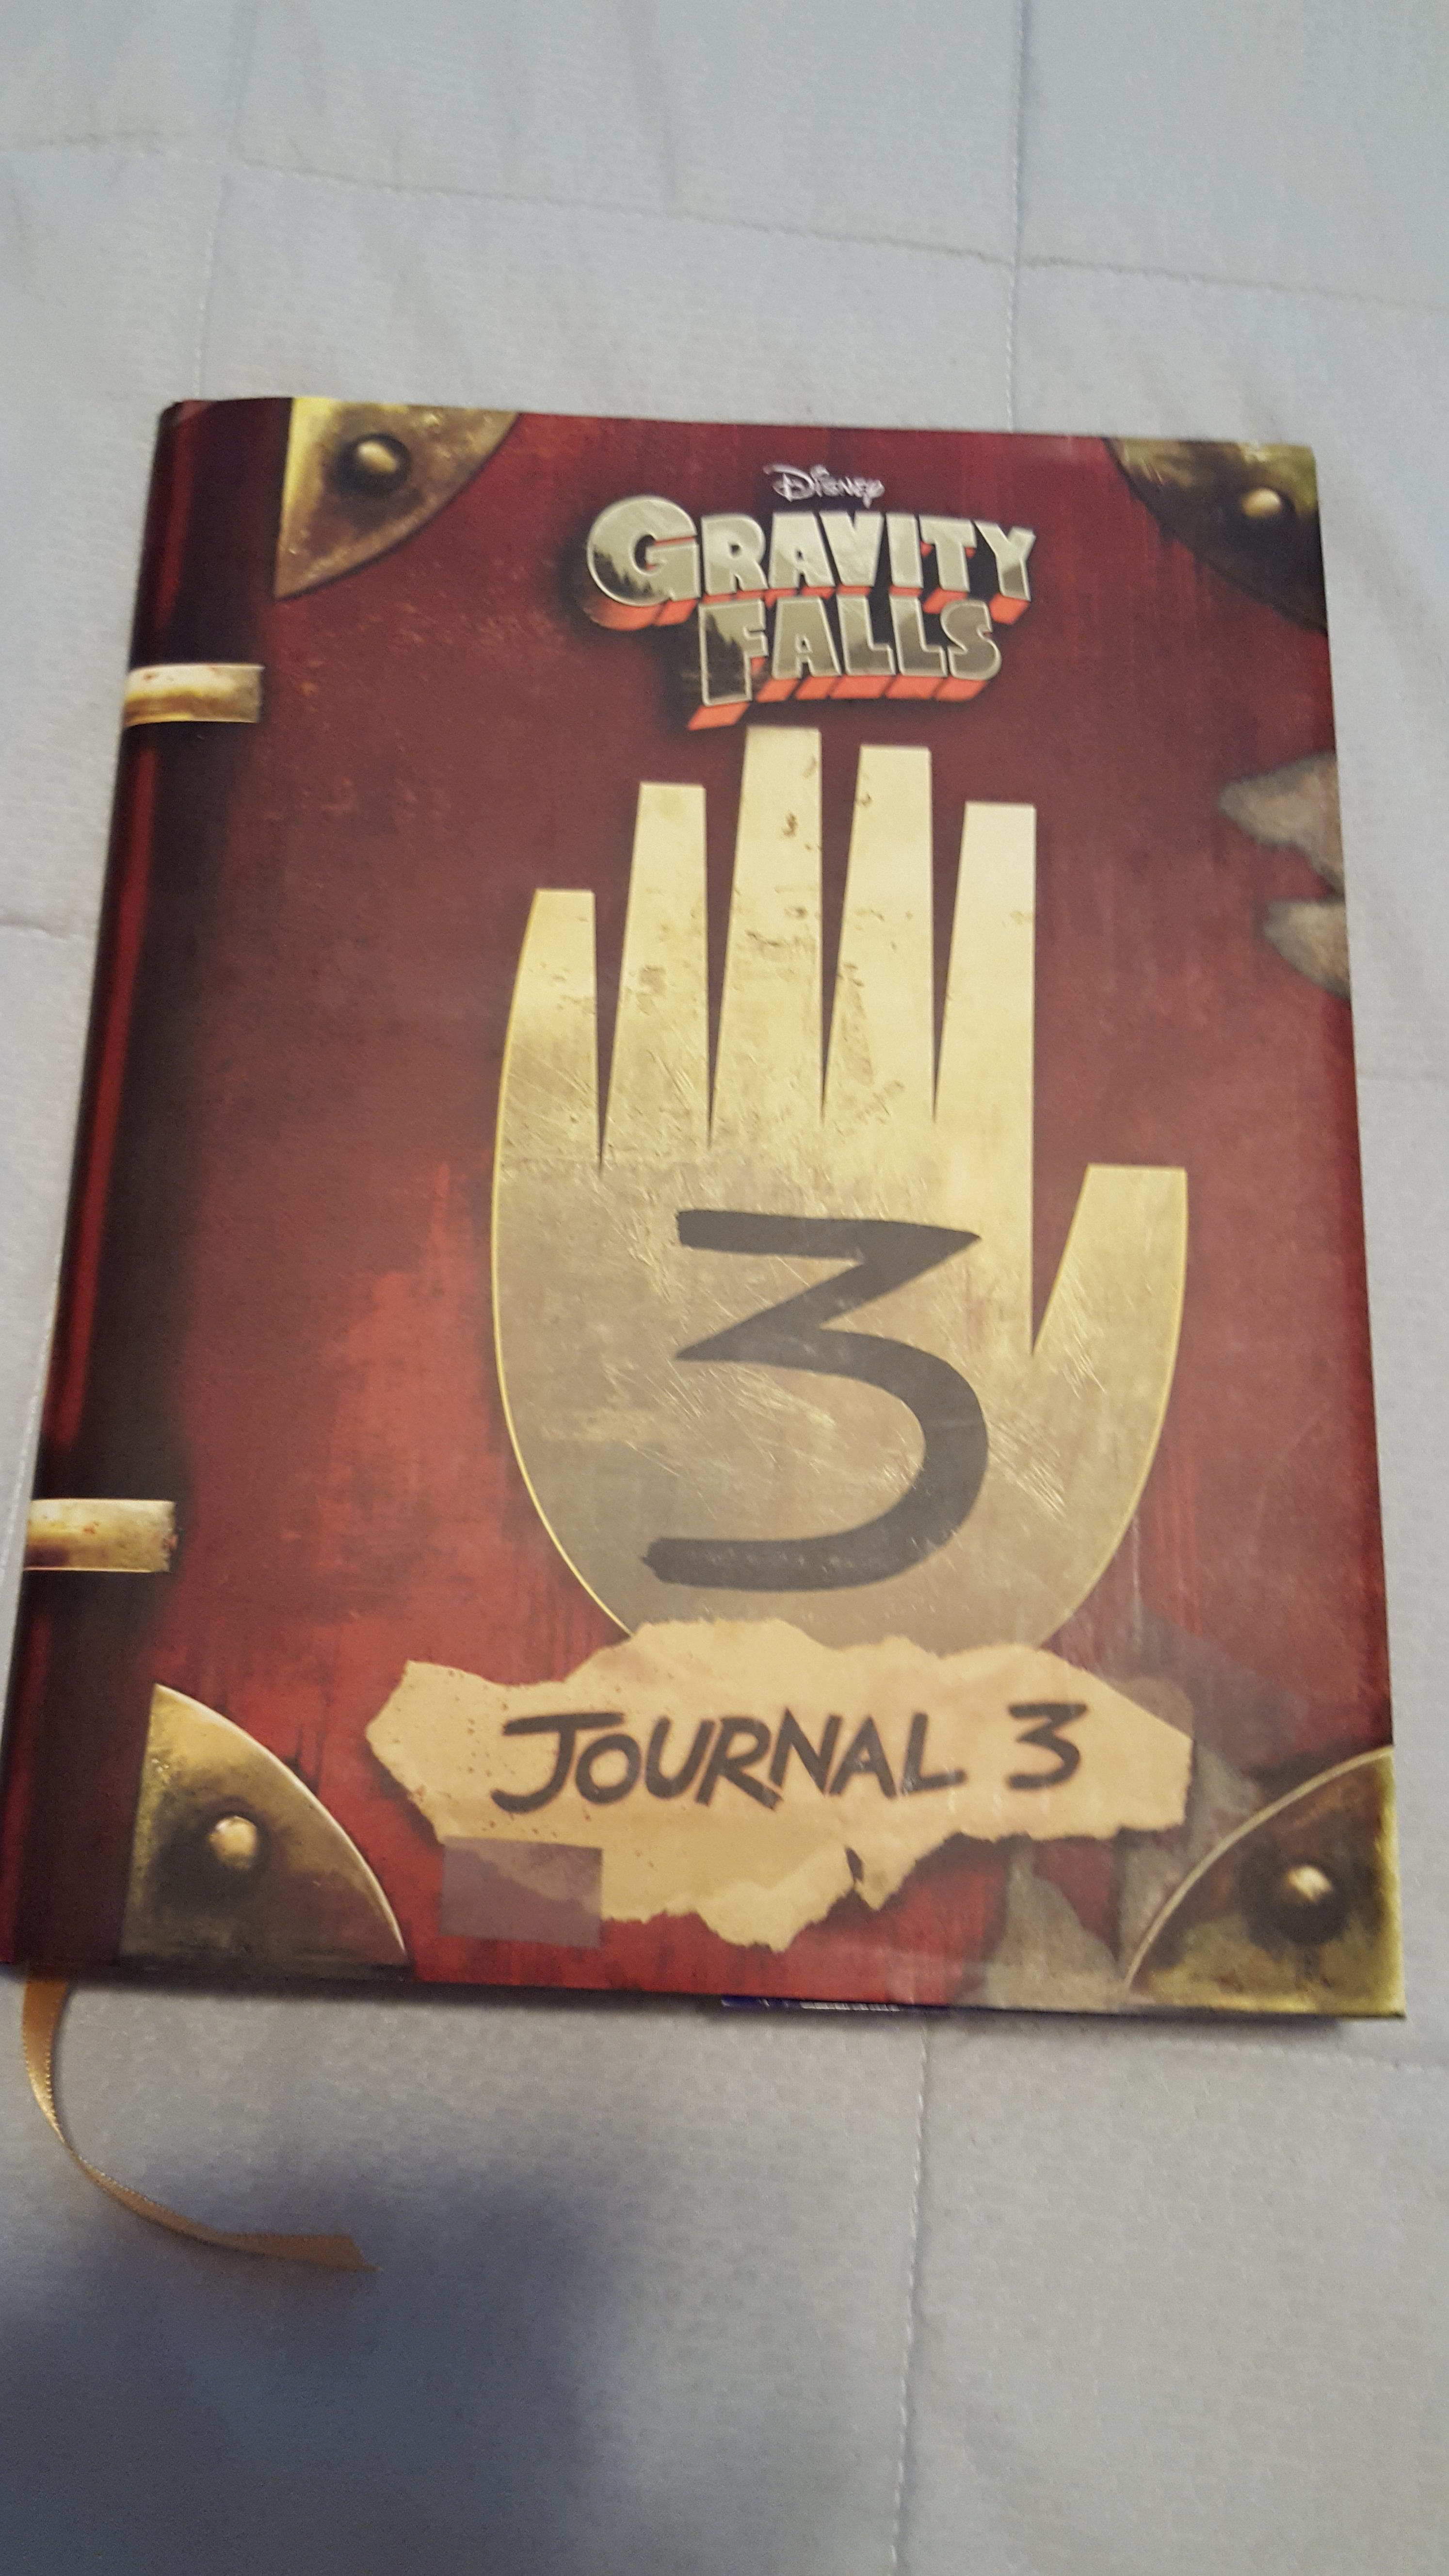 book review gravity falls journal 3 by alex hirsch and rob renzetti